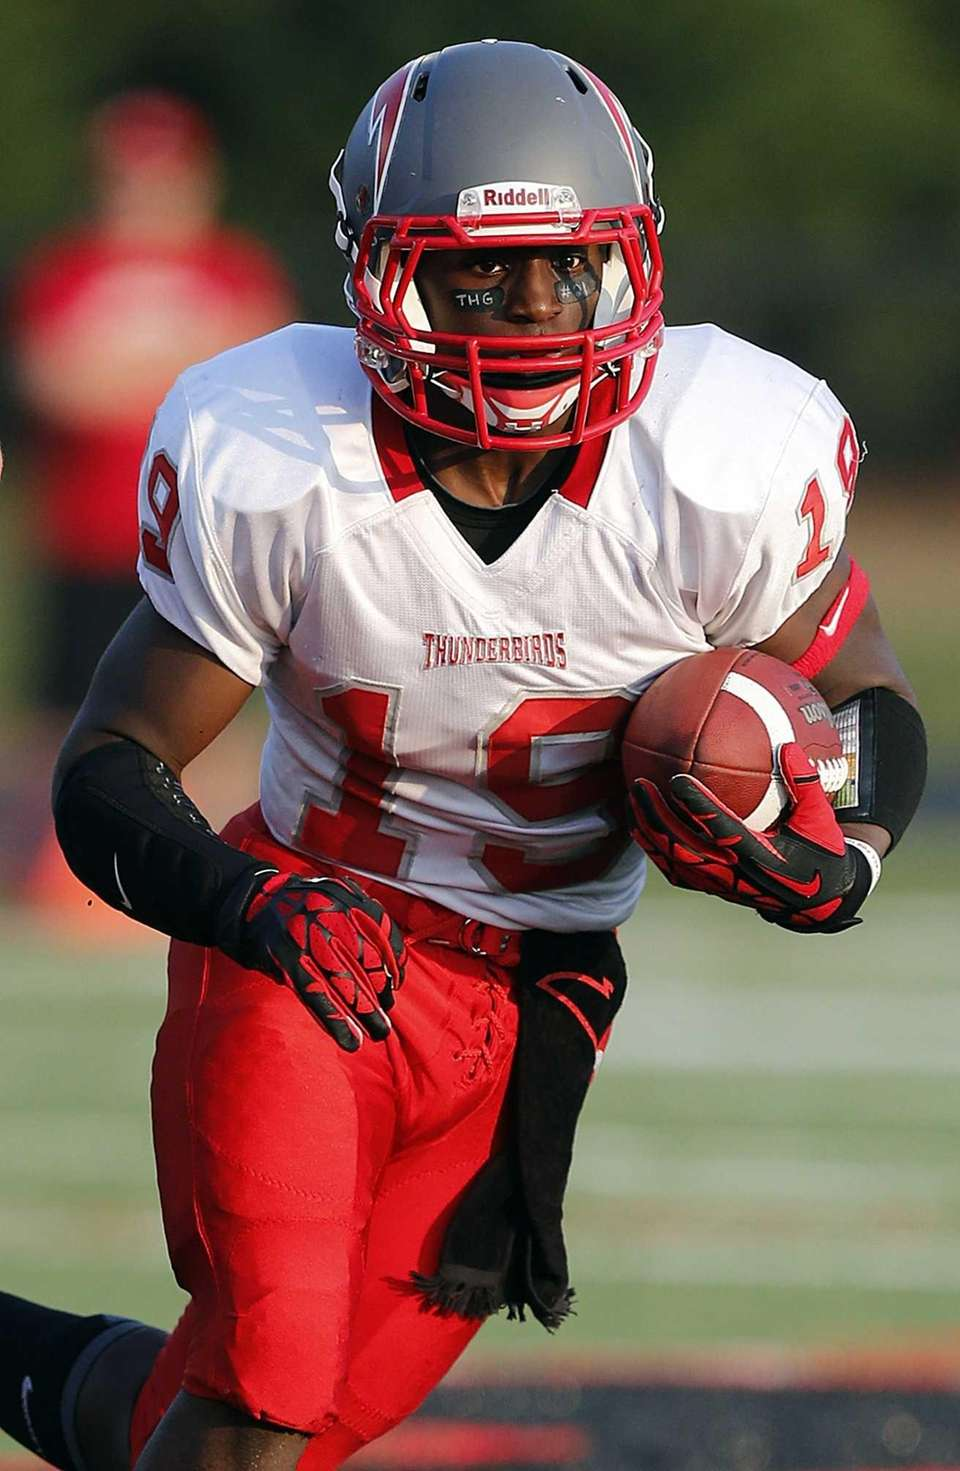 Connetquot running back Marcus Gutierrez runs from scrimmage